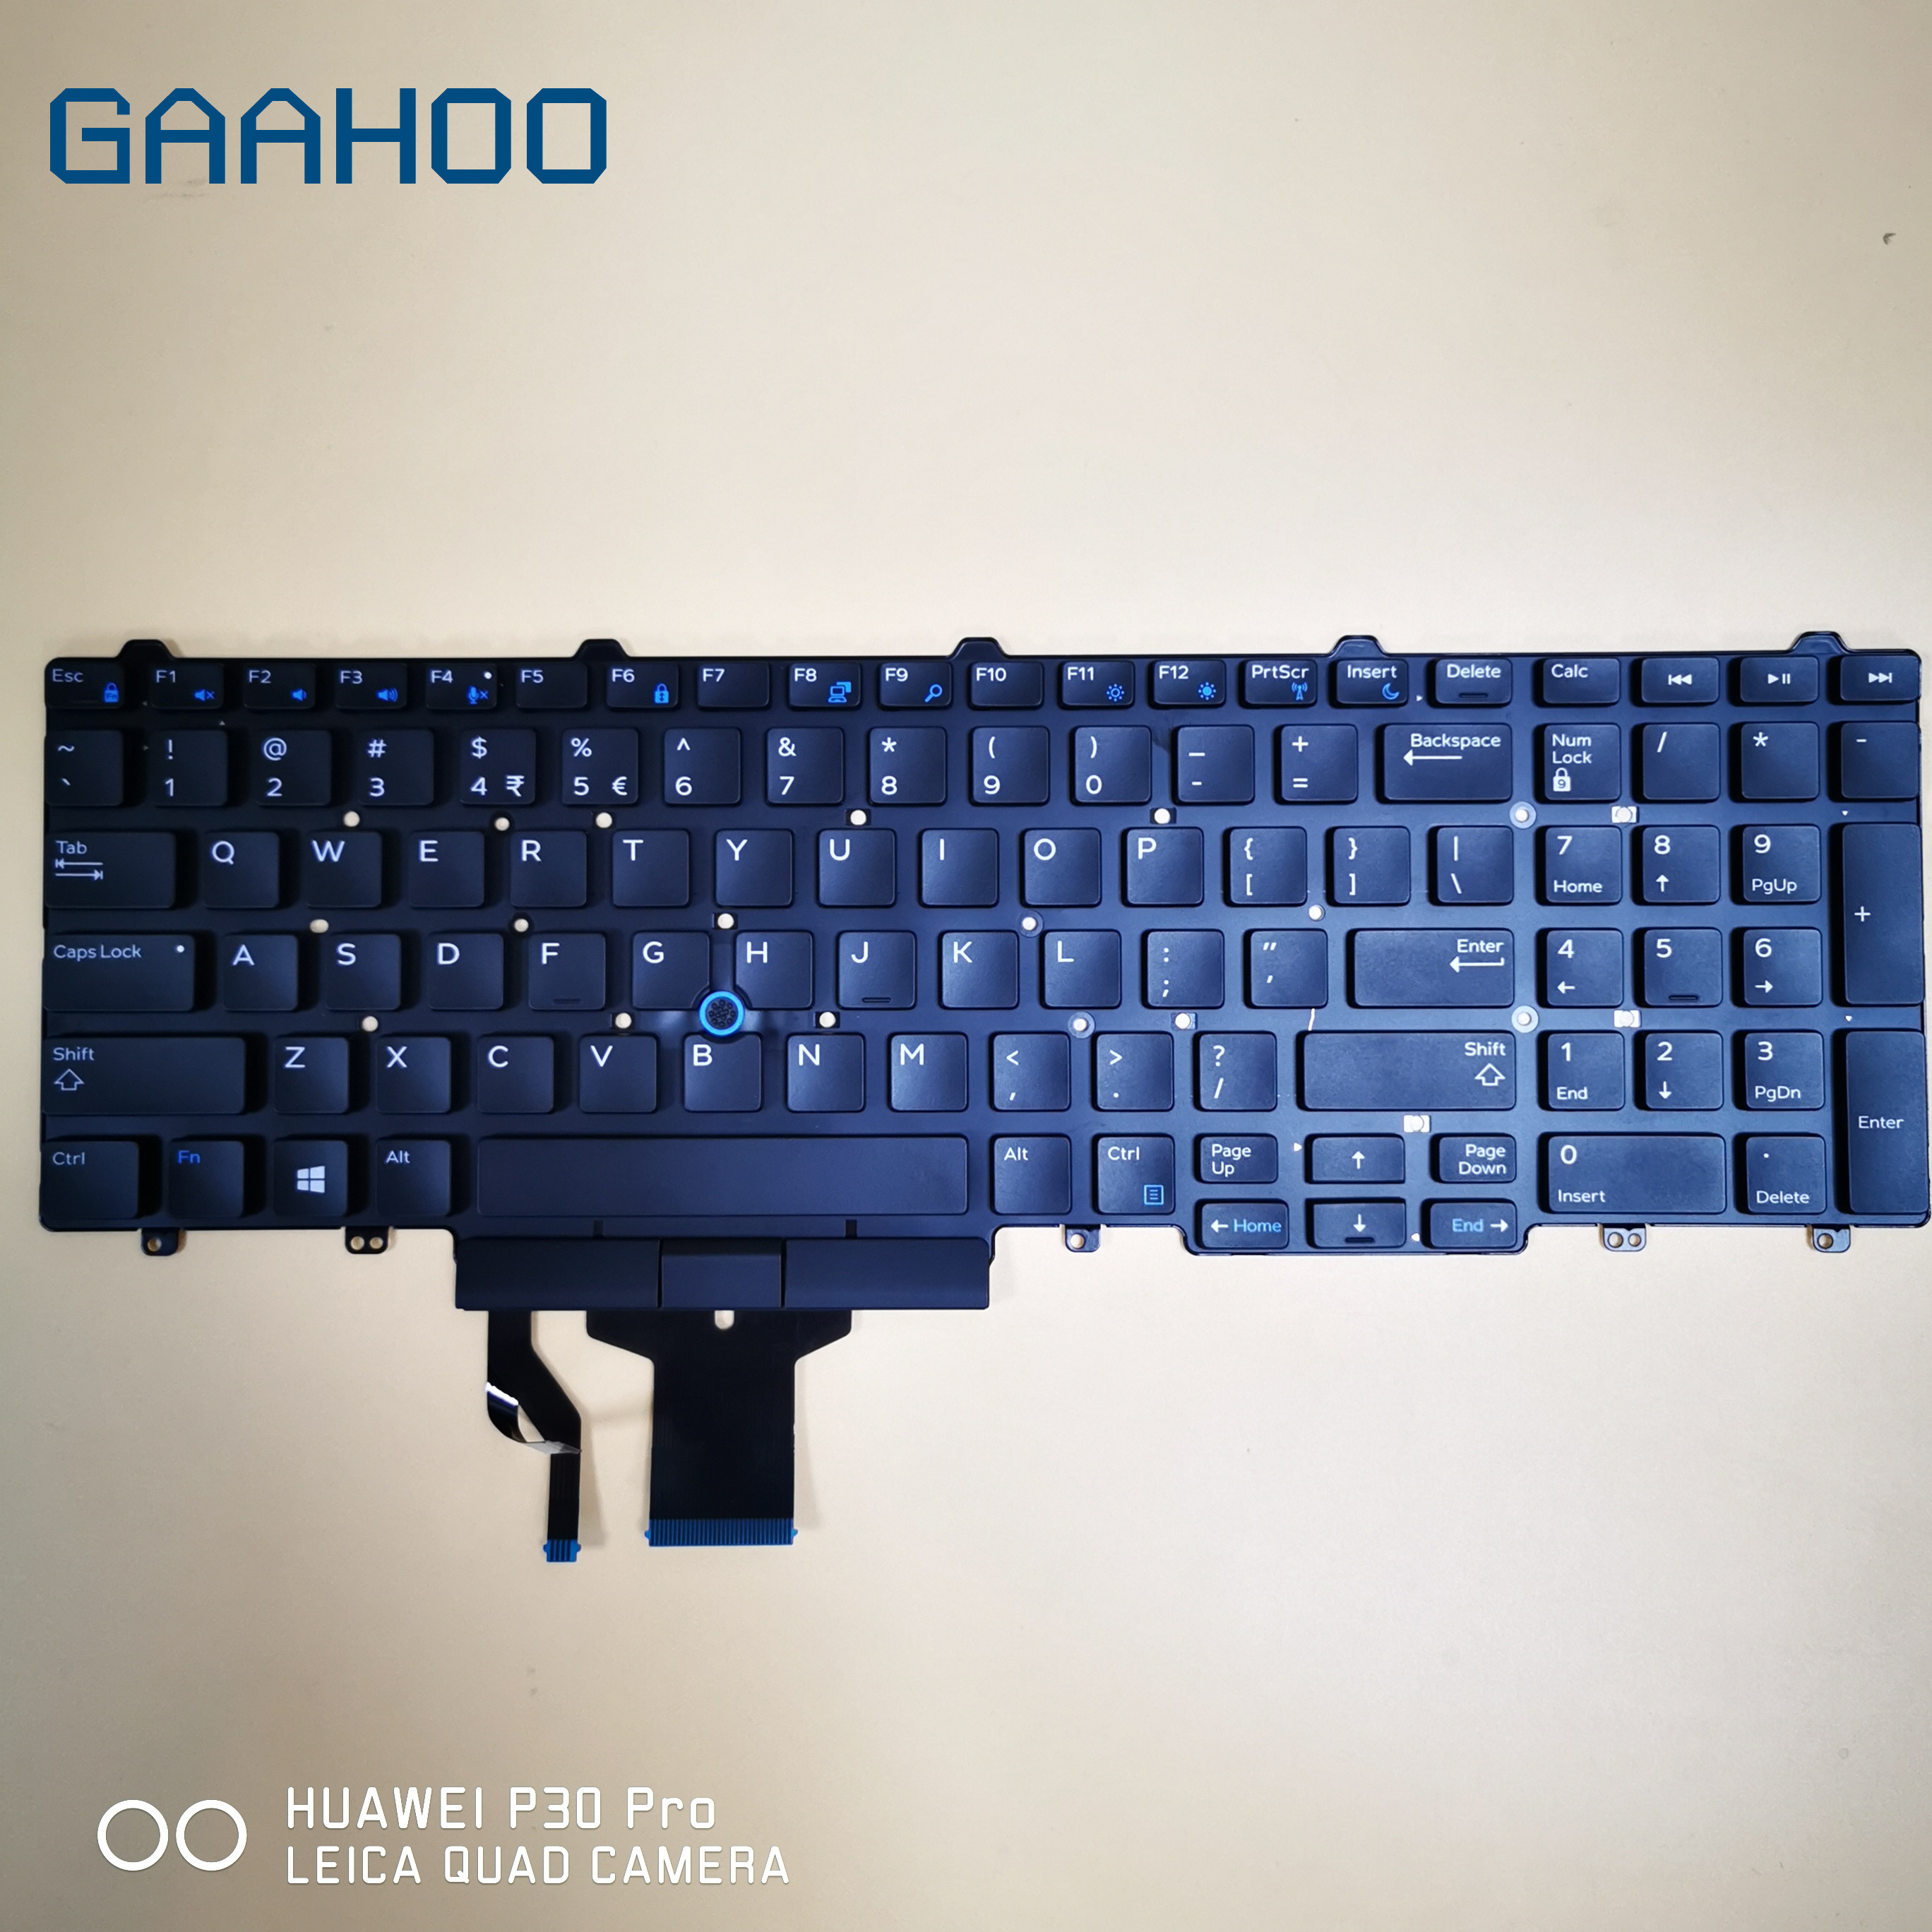 US <font><b>keyboard</b></font> for <font><b>Dell</b></font> Latitude 5550 5570 5580 5590 PRECISION 3510 <font><b>3520</b></font> 3530 3540 7510 7520 7530 7710 7720 LAPTOP w/ TRUCKPOINT image